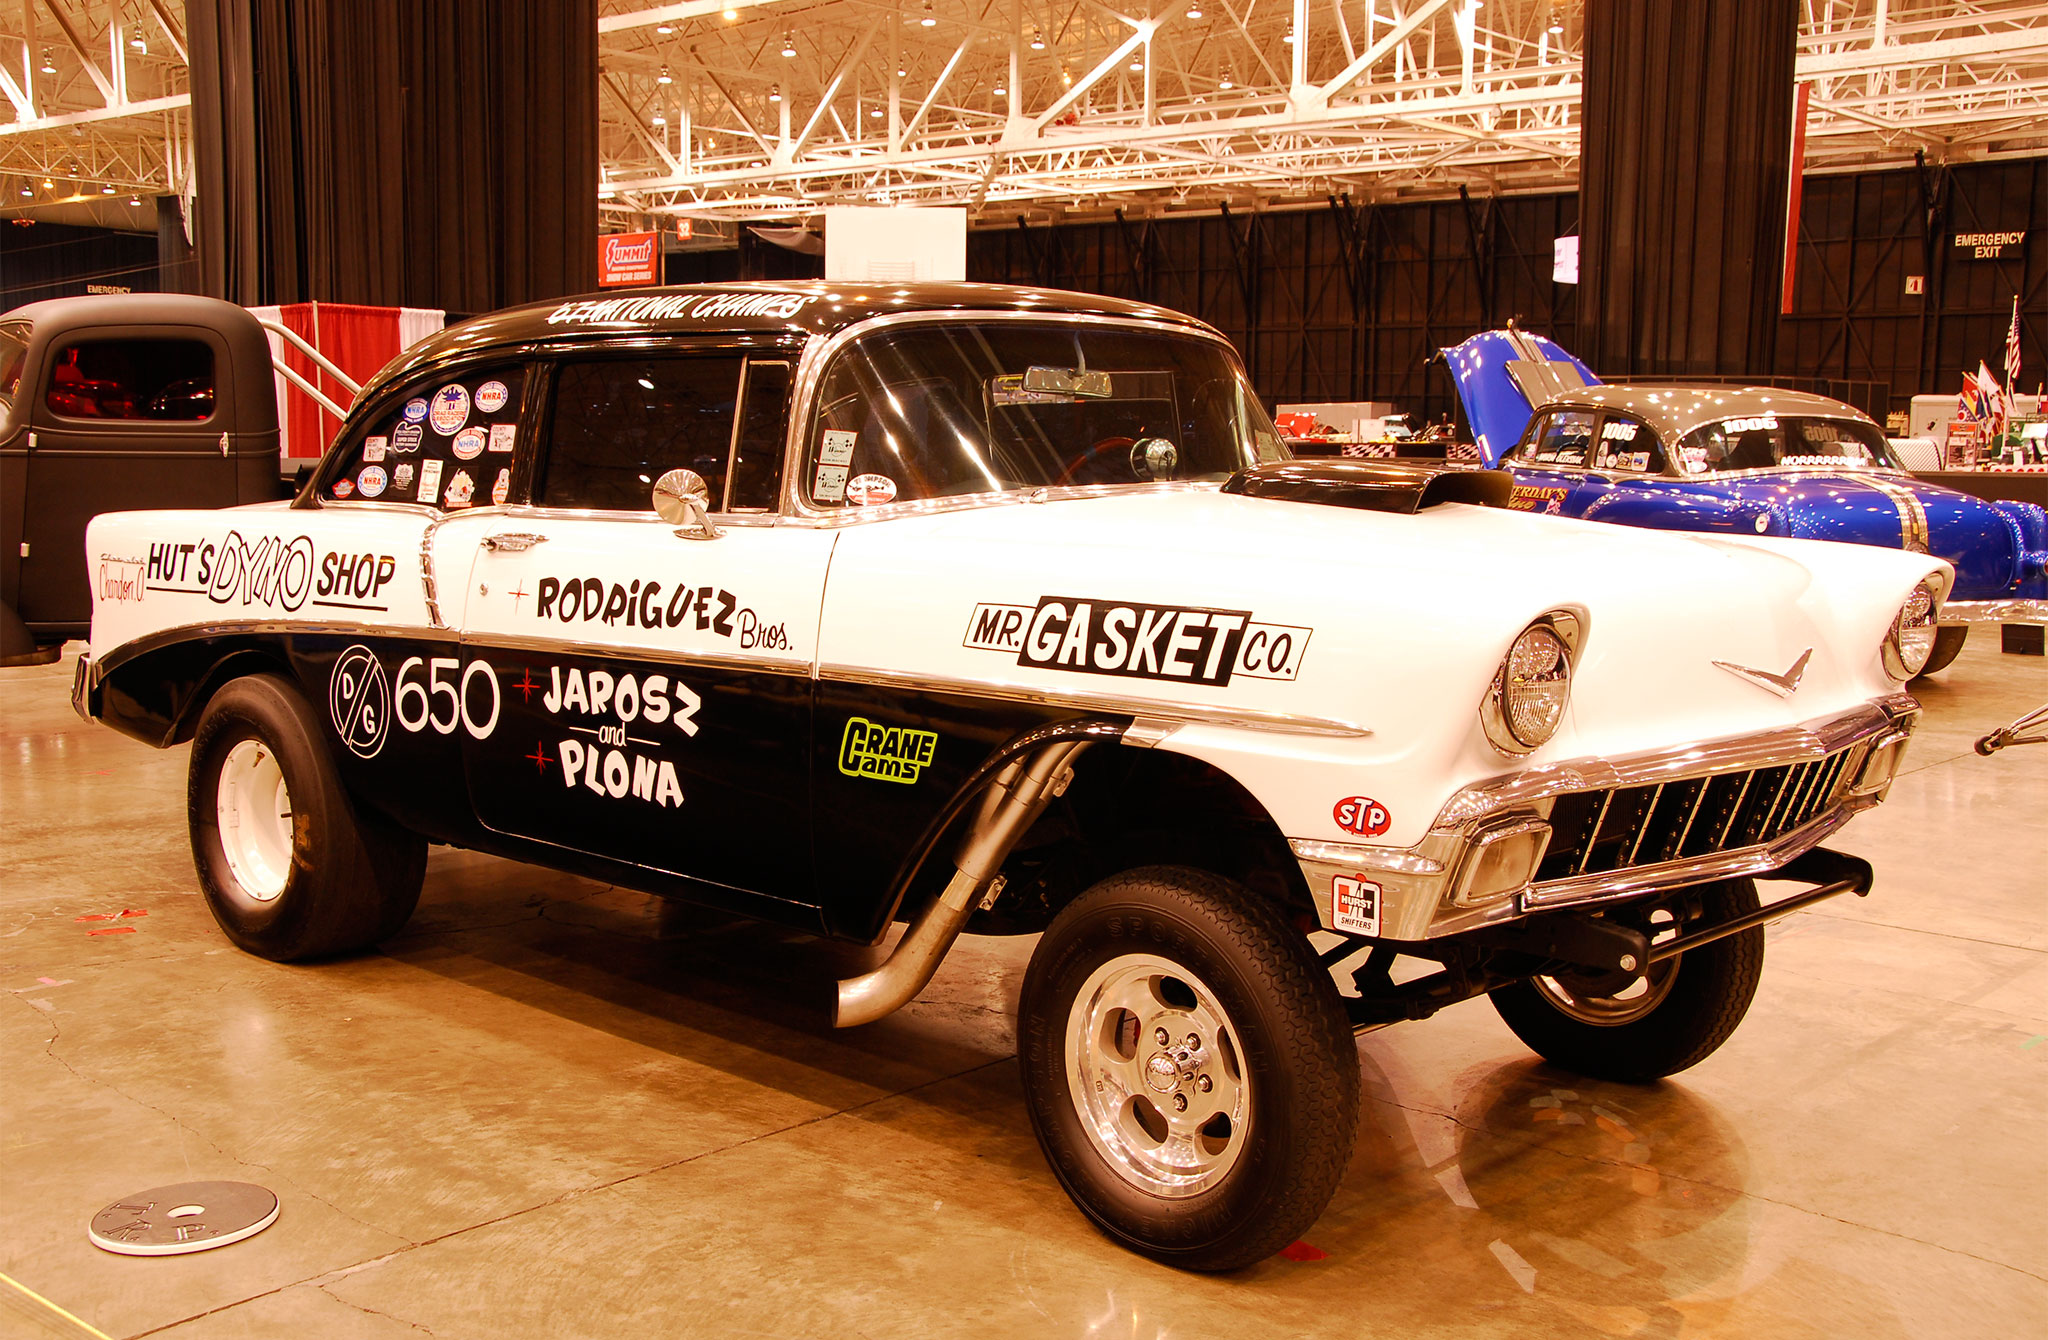 Looking like it was ready to run the quarter-mile, Bill DeBartolo's 1956 Chevy was ready for action with a nosebleed stance, fenderwell headers, and plenty of attitude.